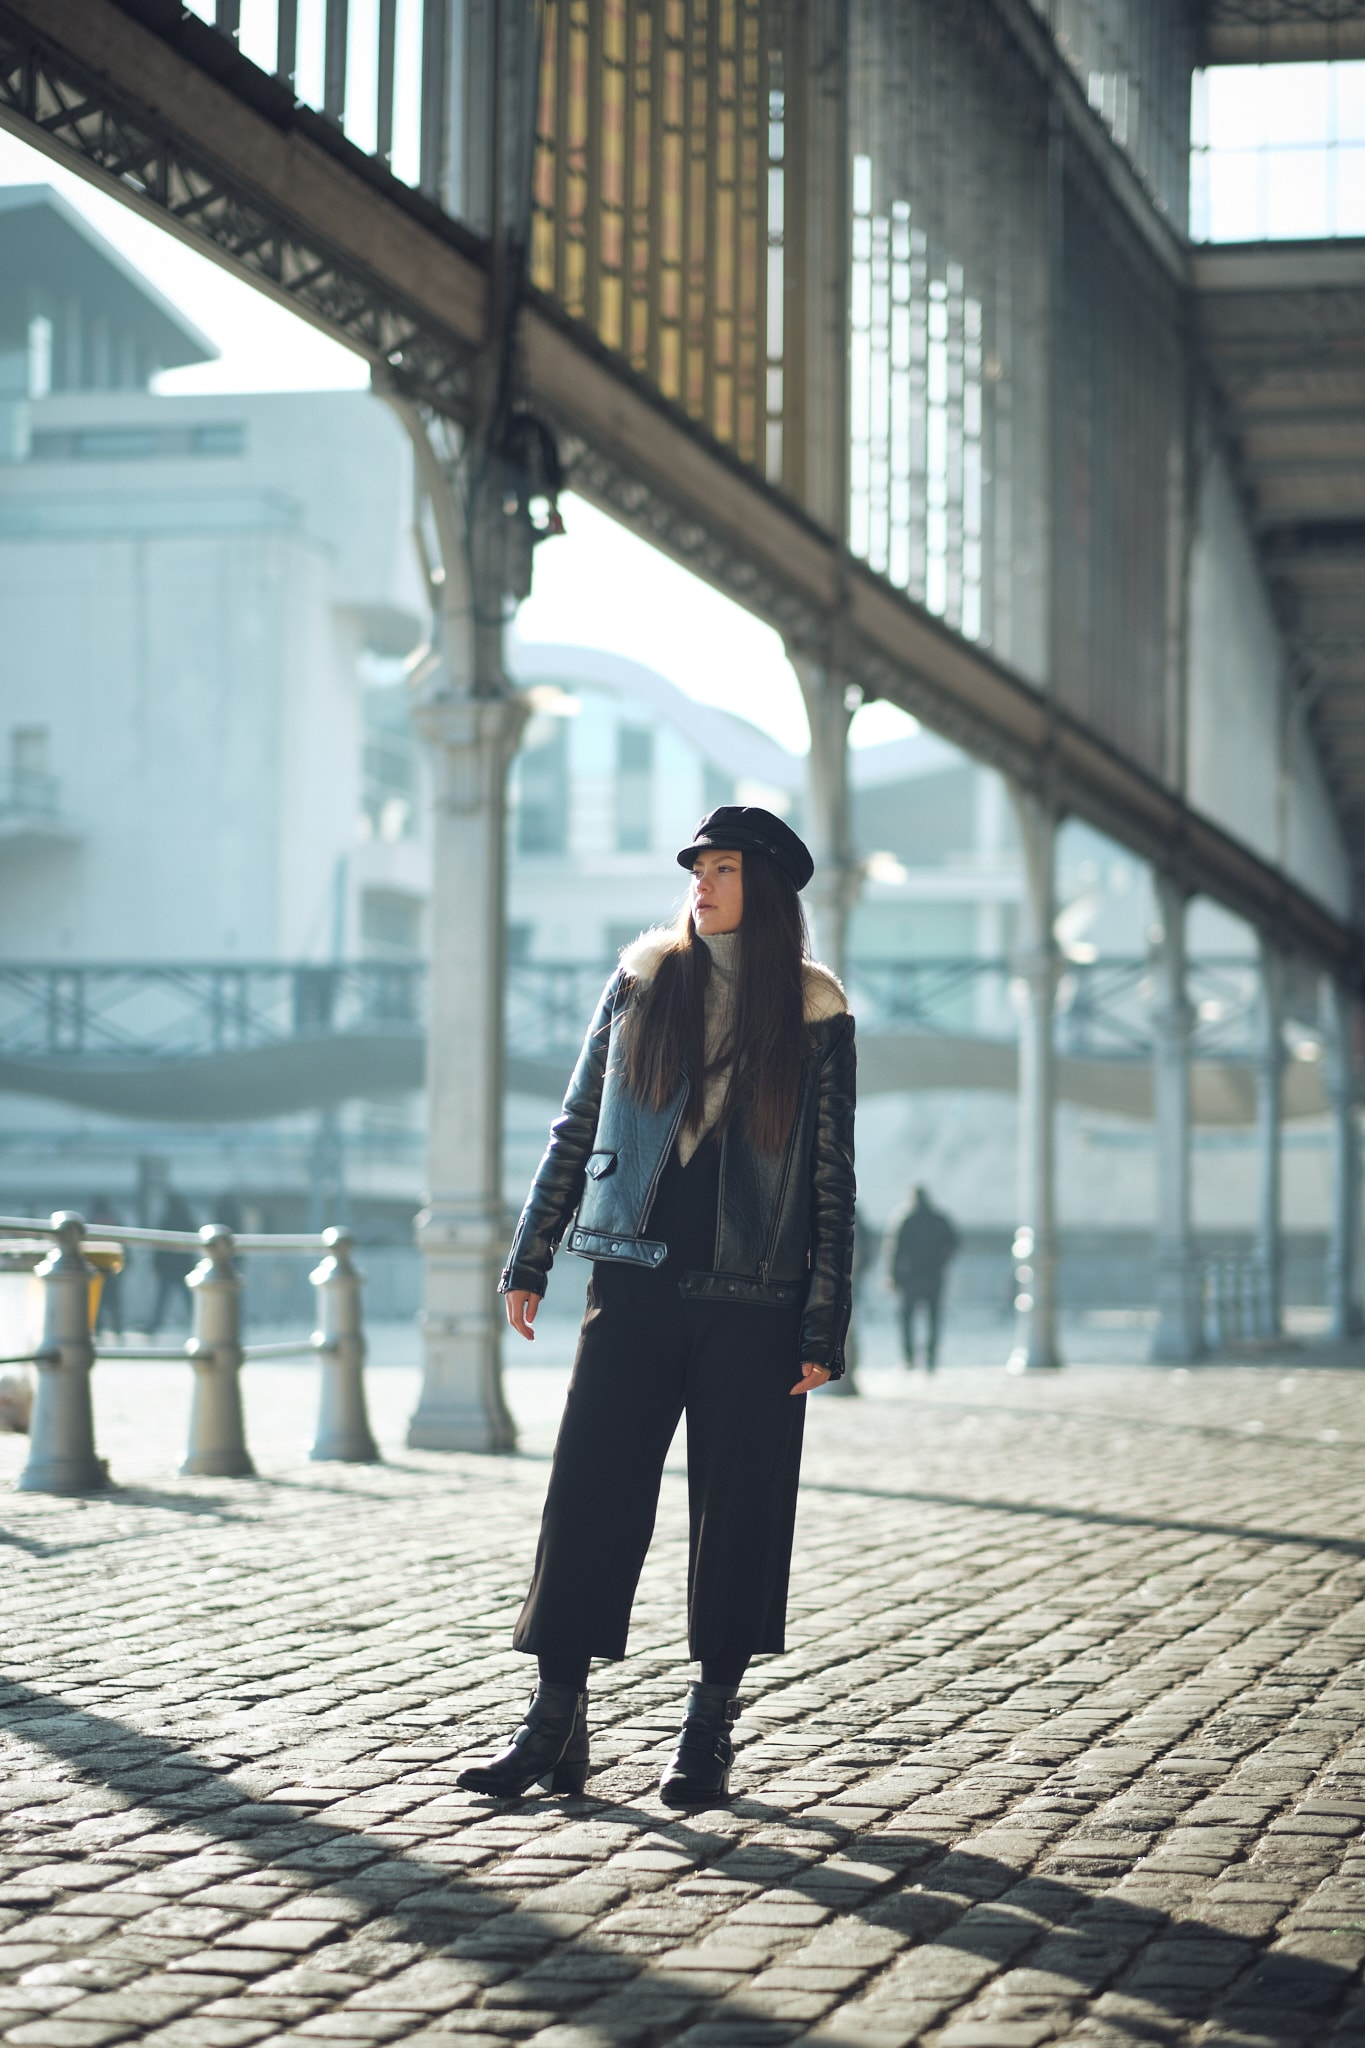 casquette-marin-fashion-blogger-blog-mode-paris-12-min